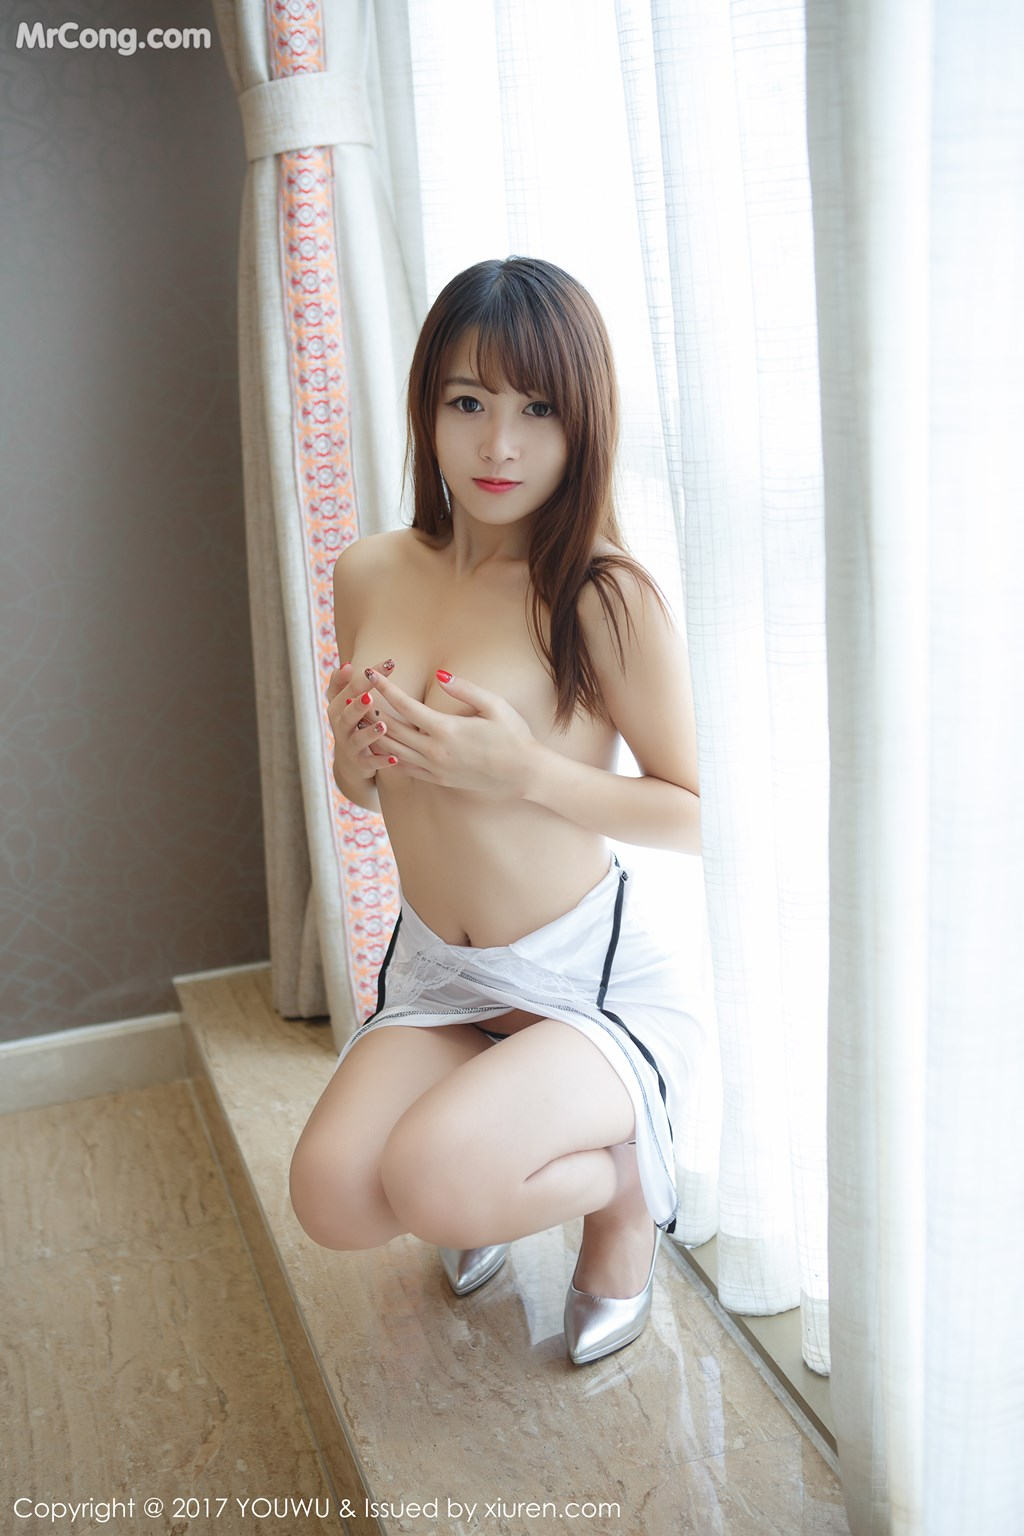 Image YouWu-Vol.070-Various-Models-MrCong.com-008 in post YouWu Vol.070 Various Models (41 ảnh)